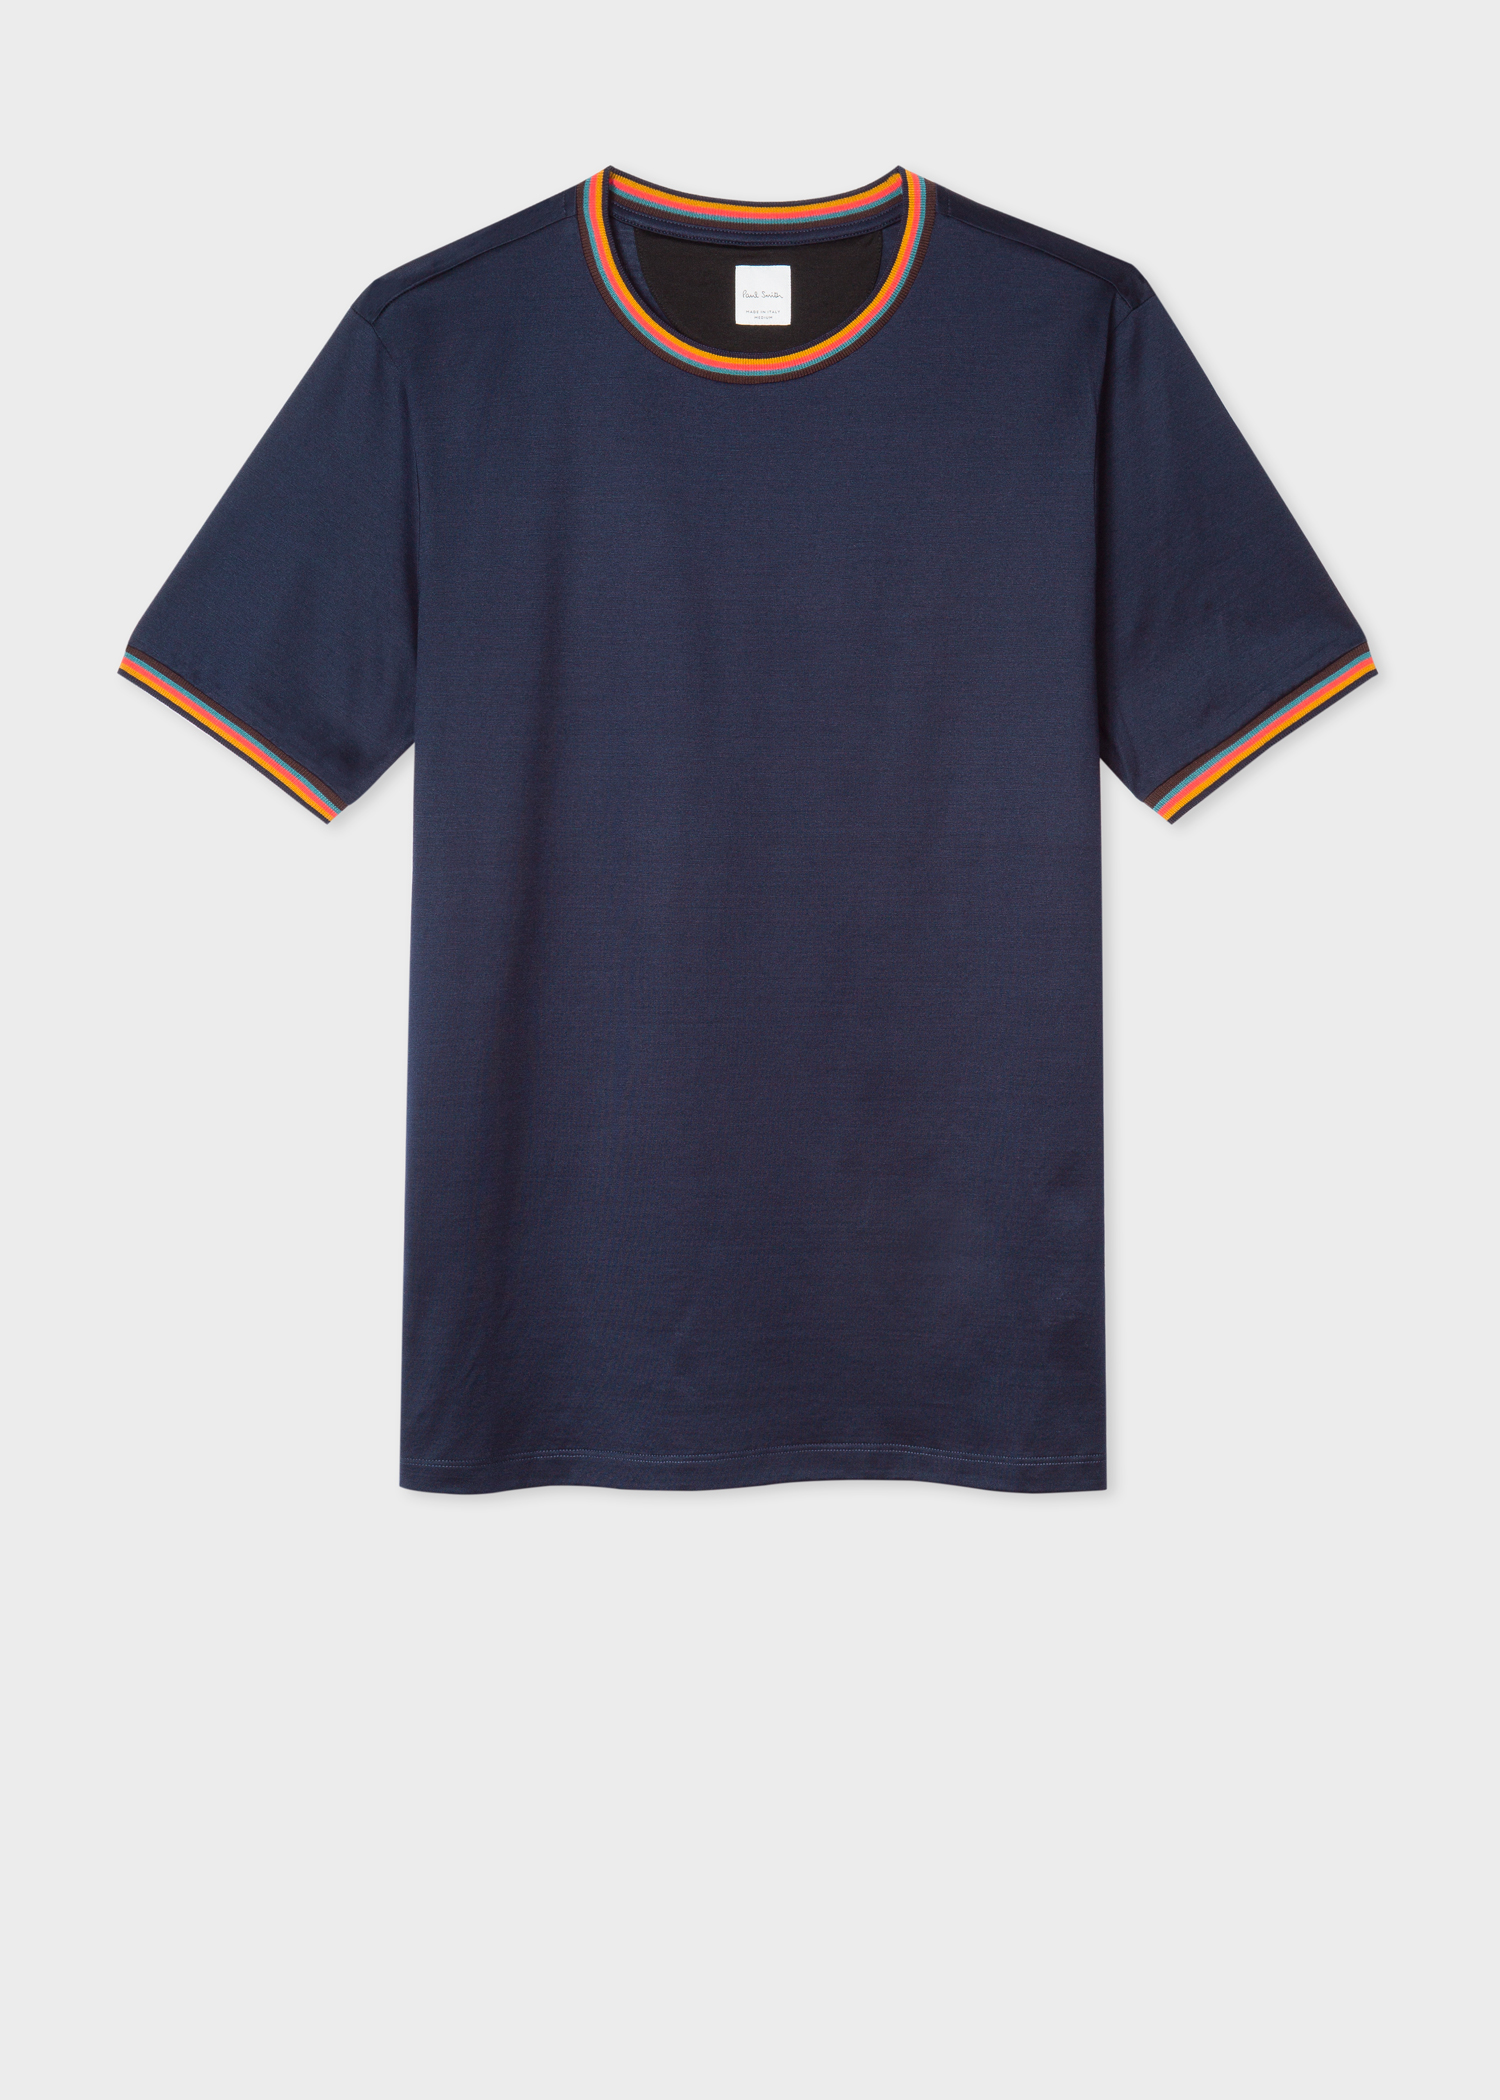 Men's Dark Navy Cotton T-Shirt With 'Artist Stripe' Trims